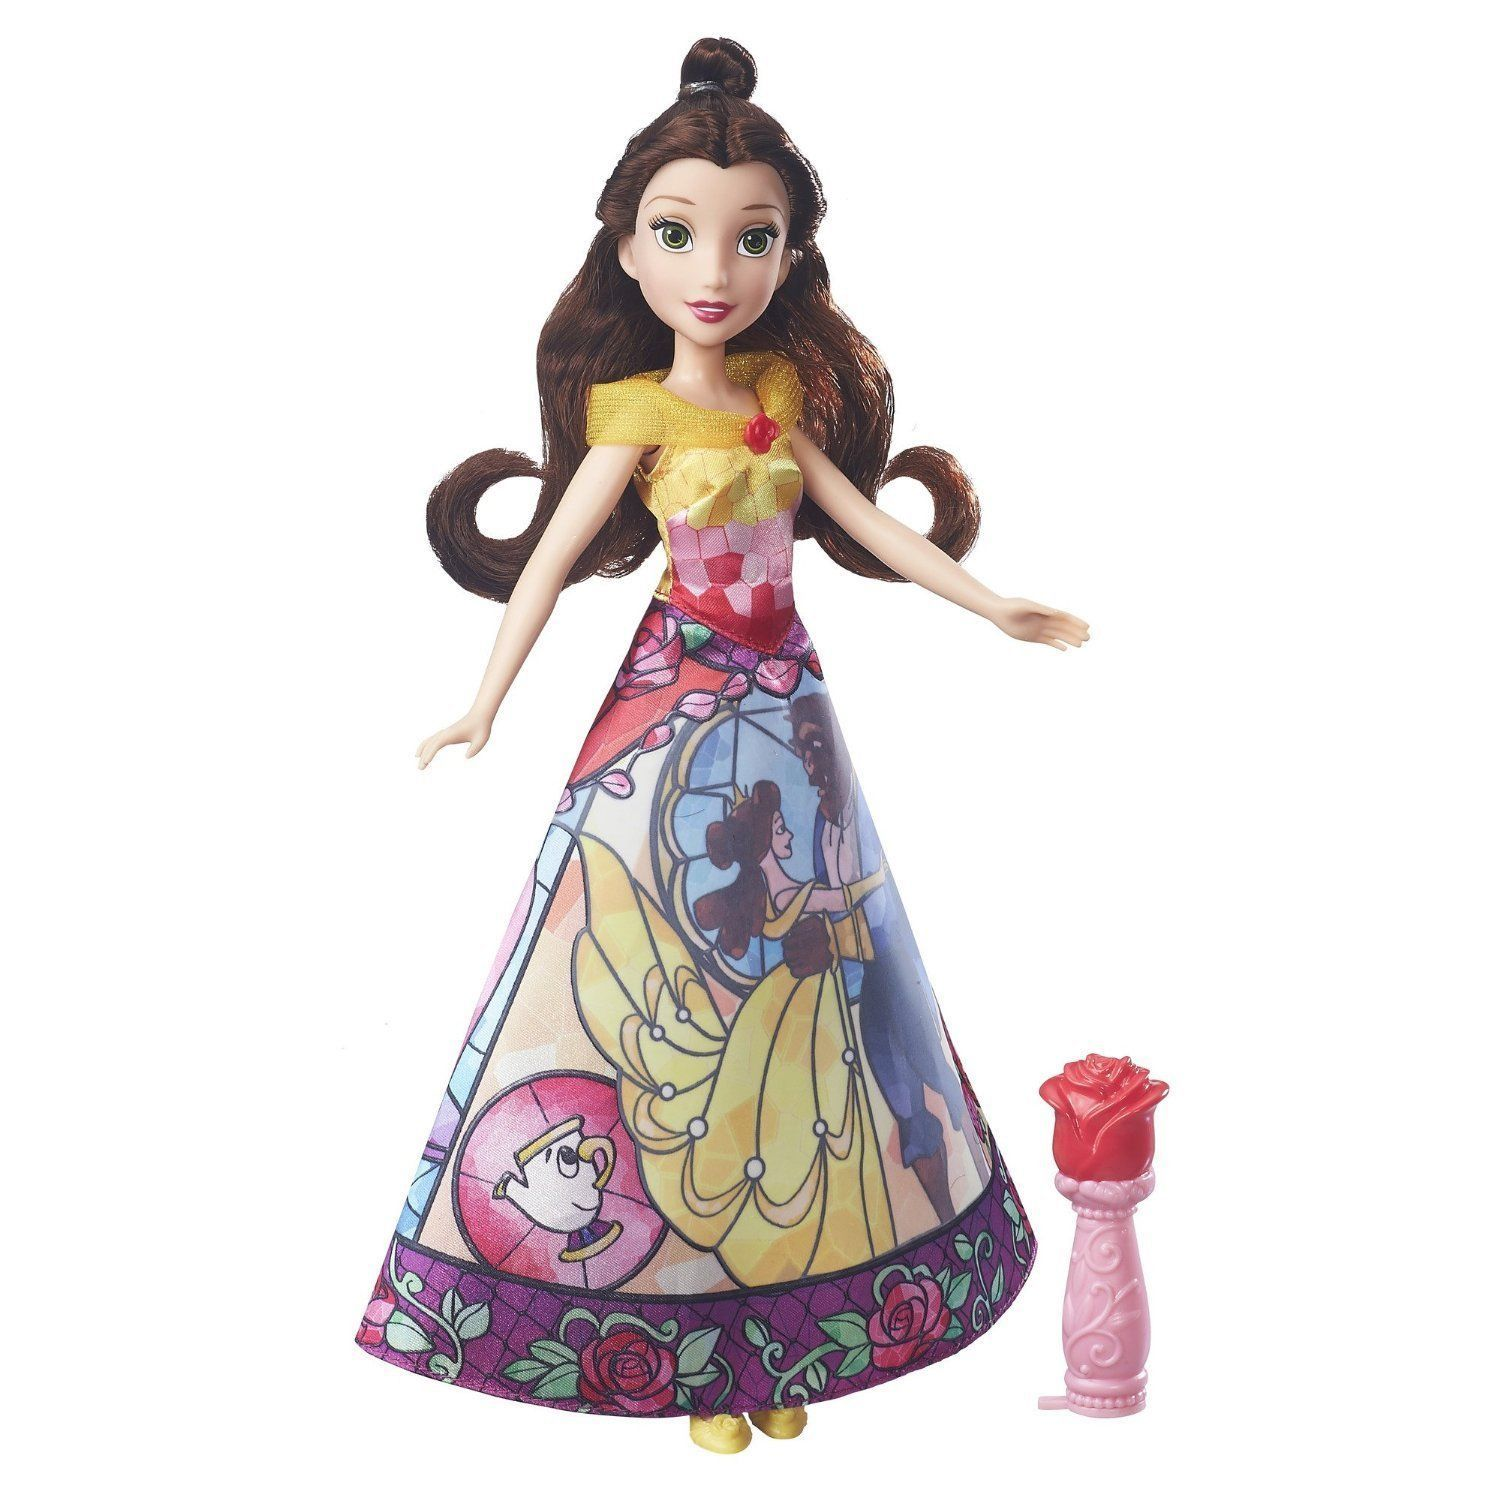 Image 0 of Disney Princess Belle's Magical Story Skirt Doll in Fuchsia/Yellow by Hasbro